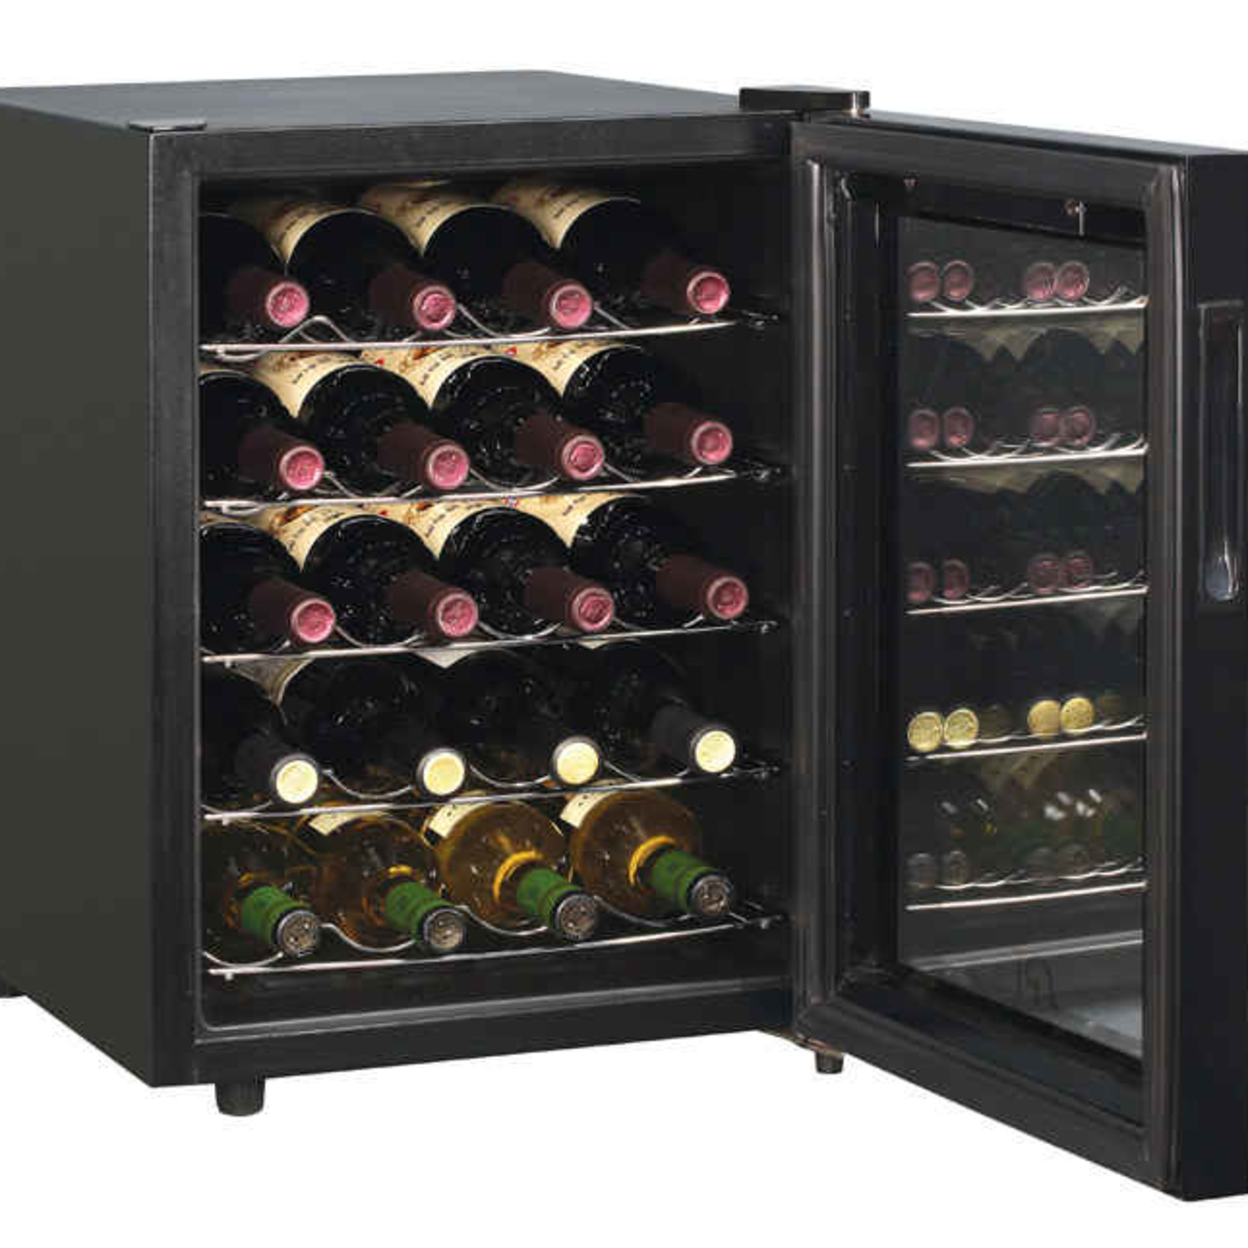 Sunpentown Wc-20Tl 20-Bottle ThermoElectric Wine Chiller with Touch-Senstive Controls